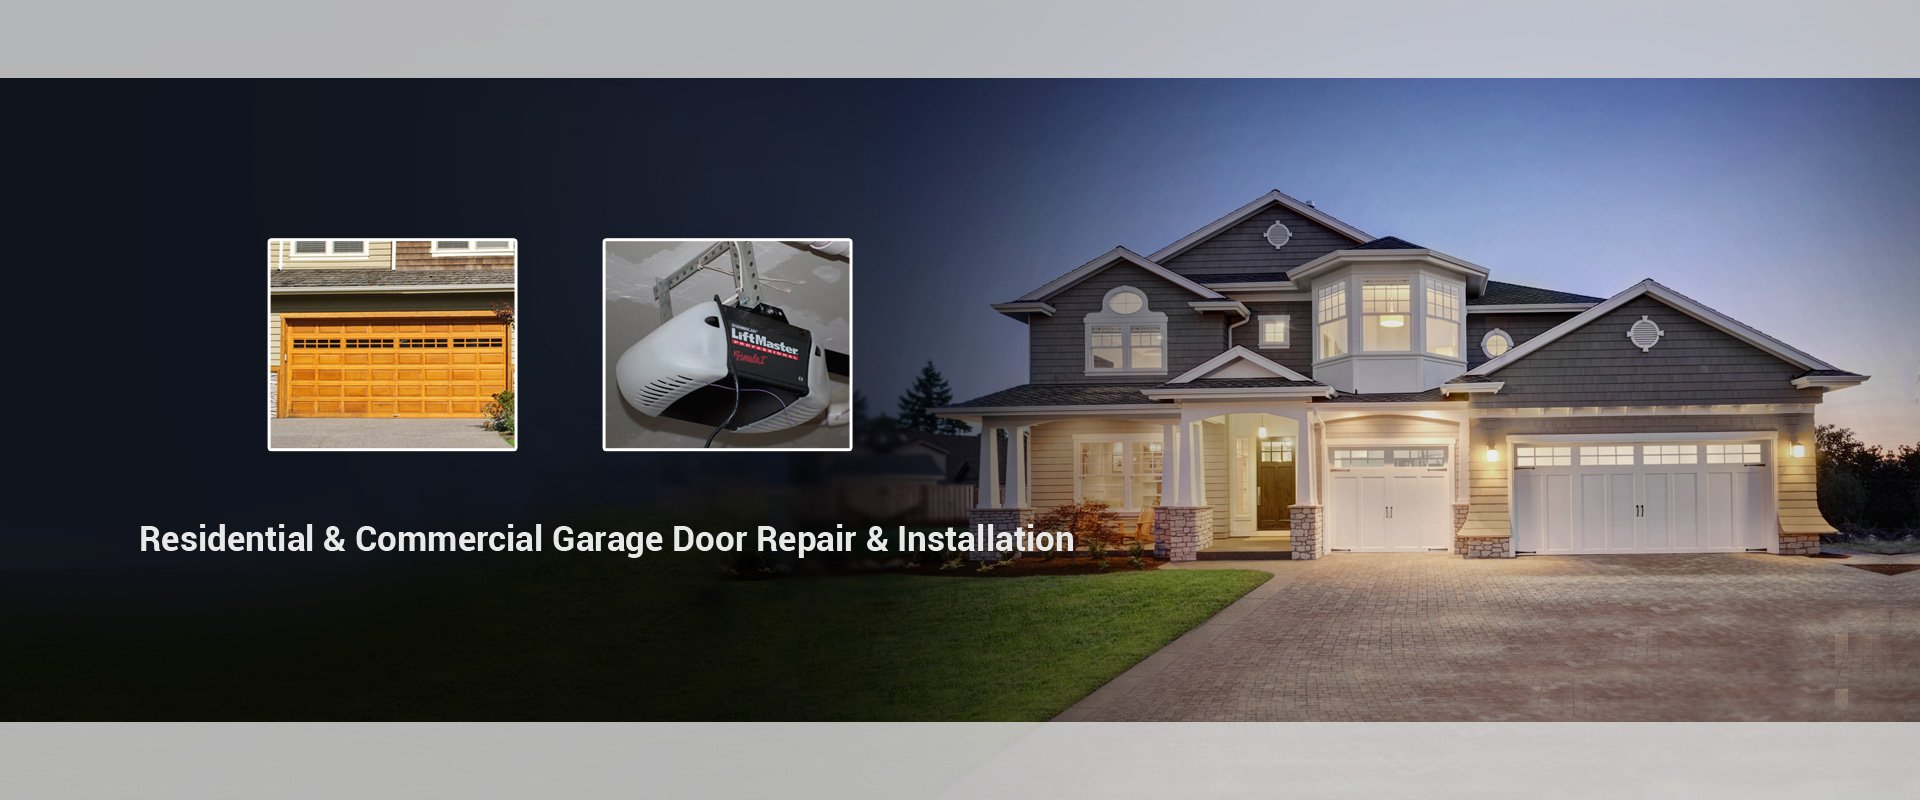 Garage Door Services Camarillo CA